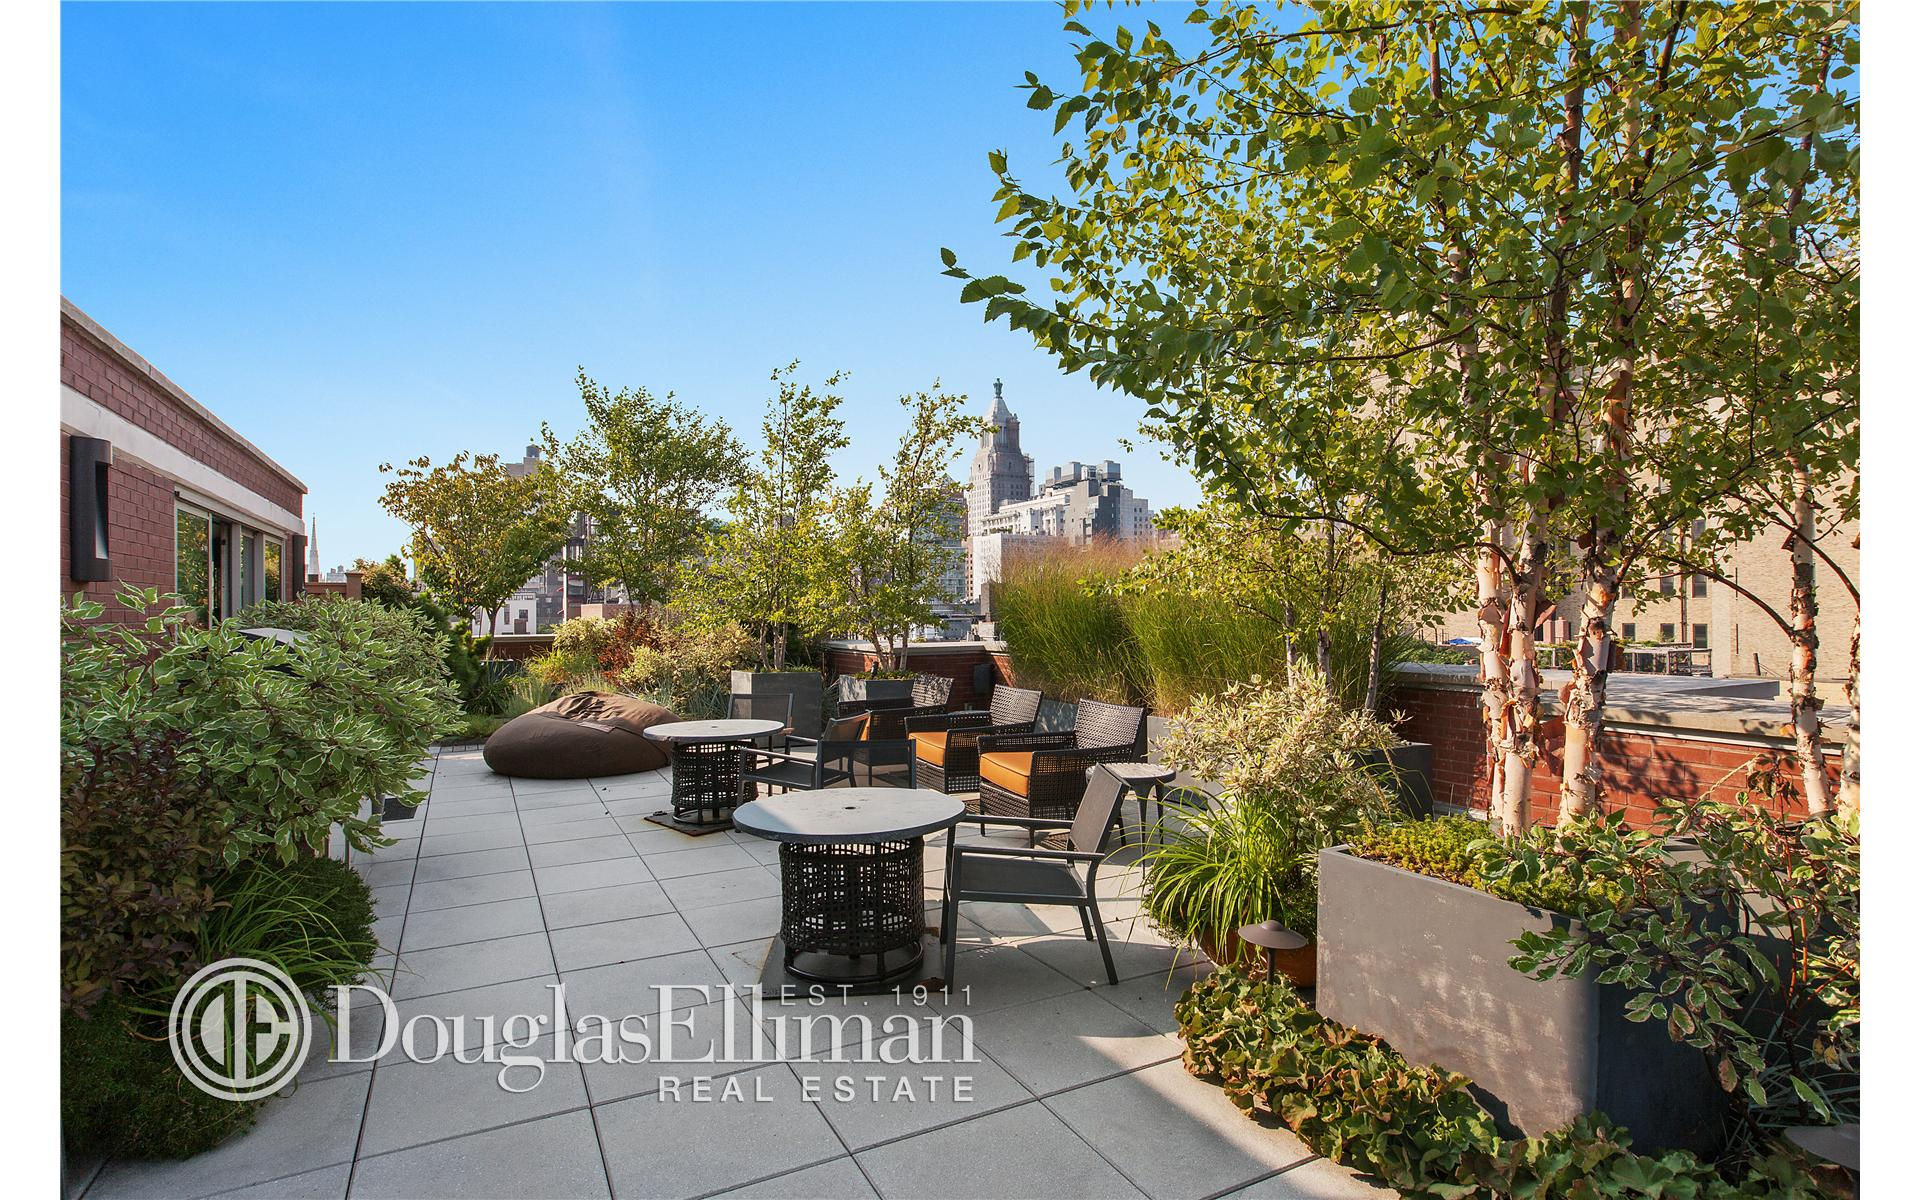 Condominium for Sale at Village Green, Village Green, 311 East 11th Street New York, New York 10003 United States